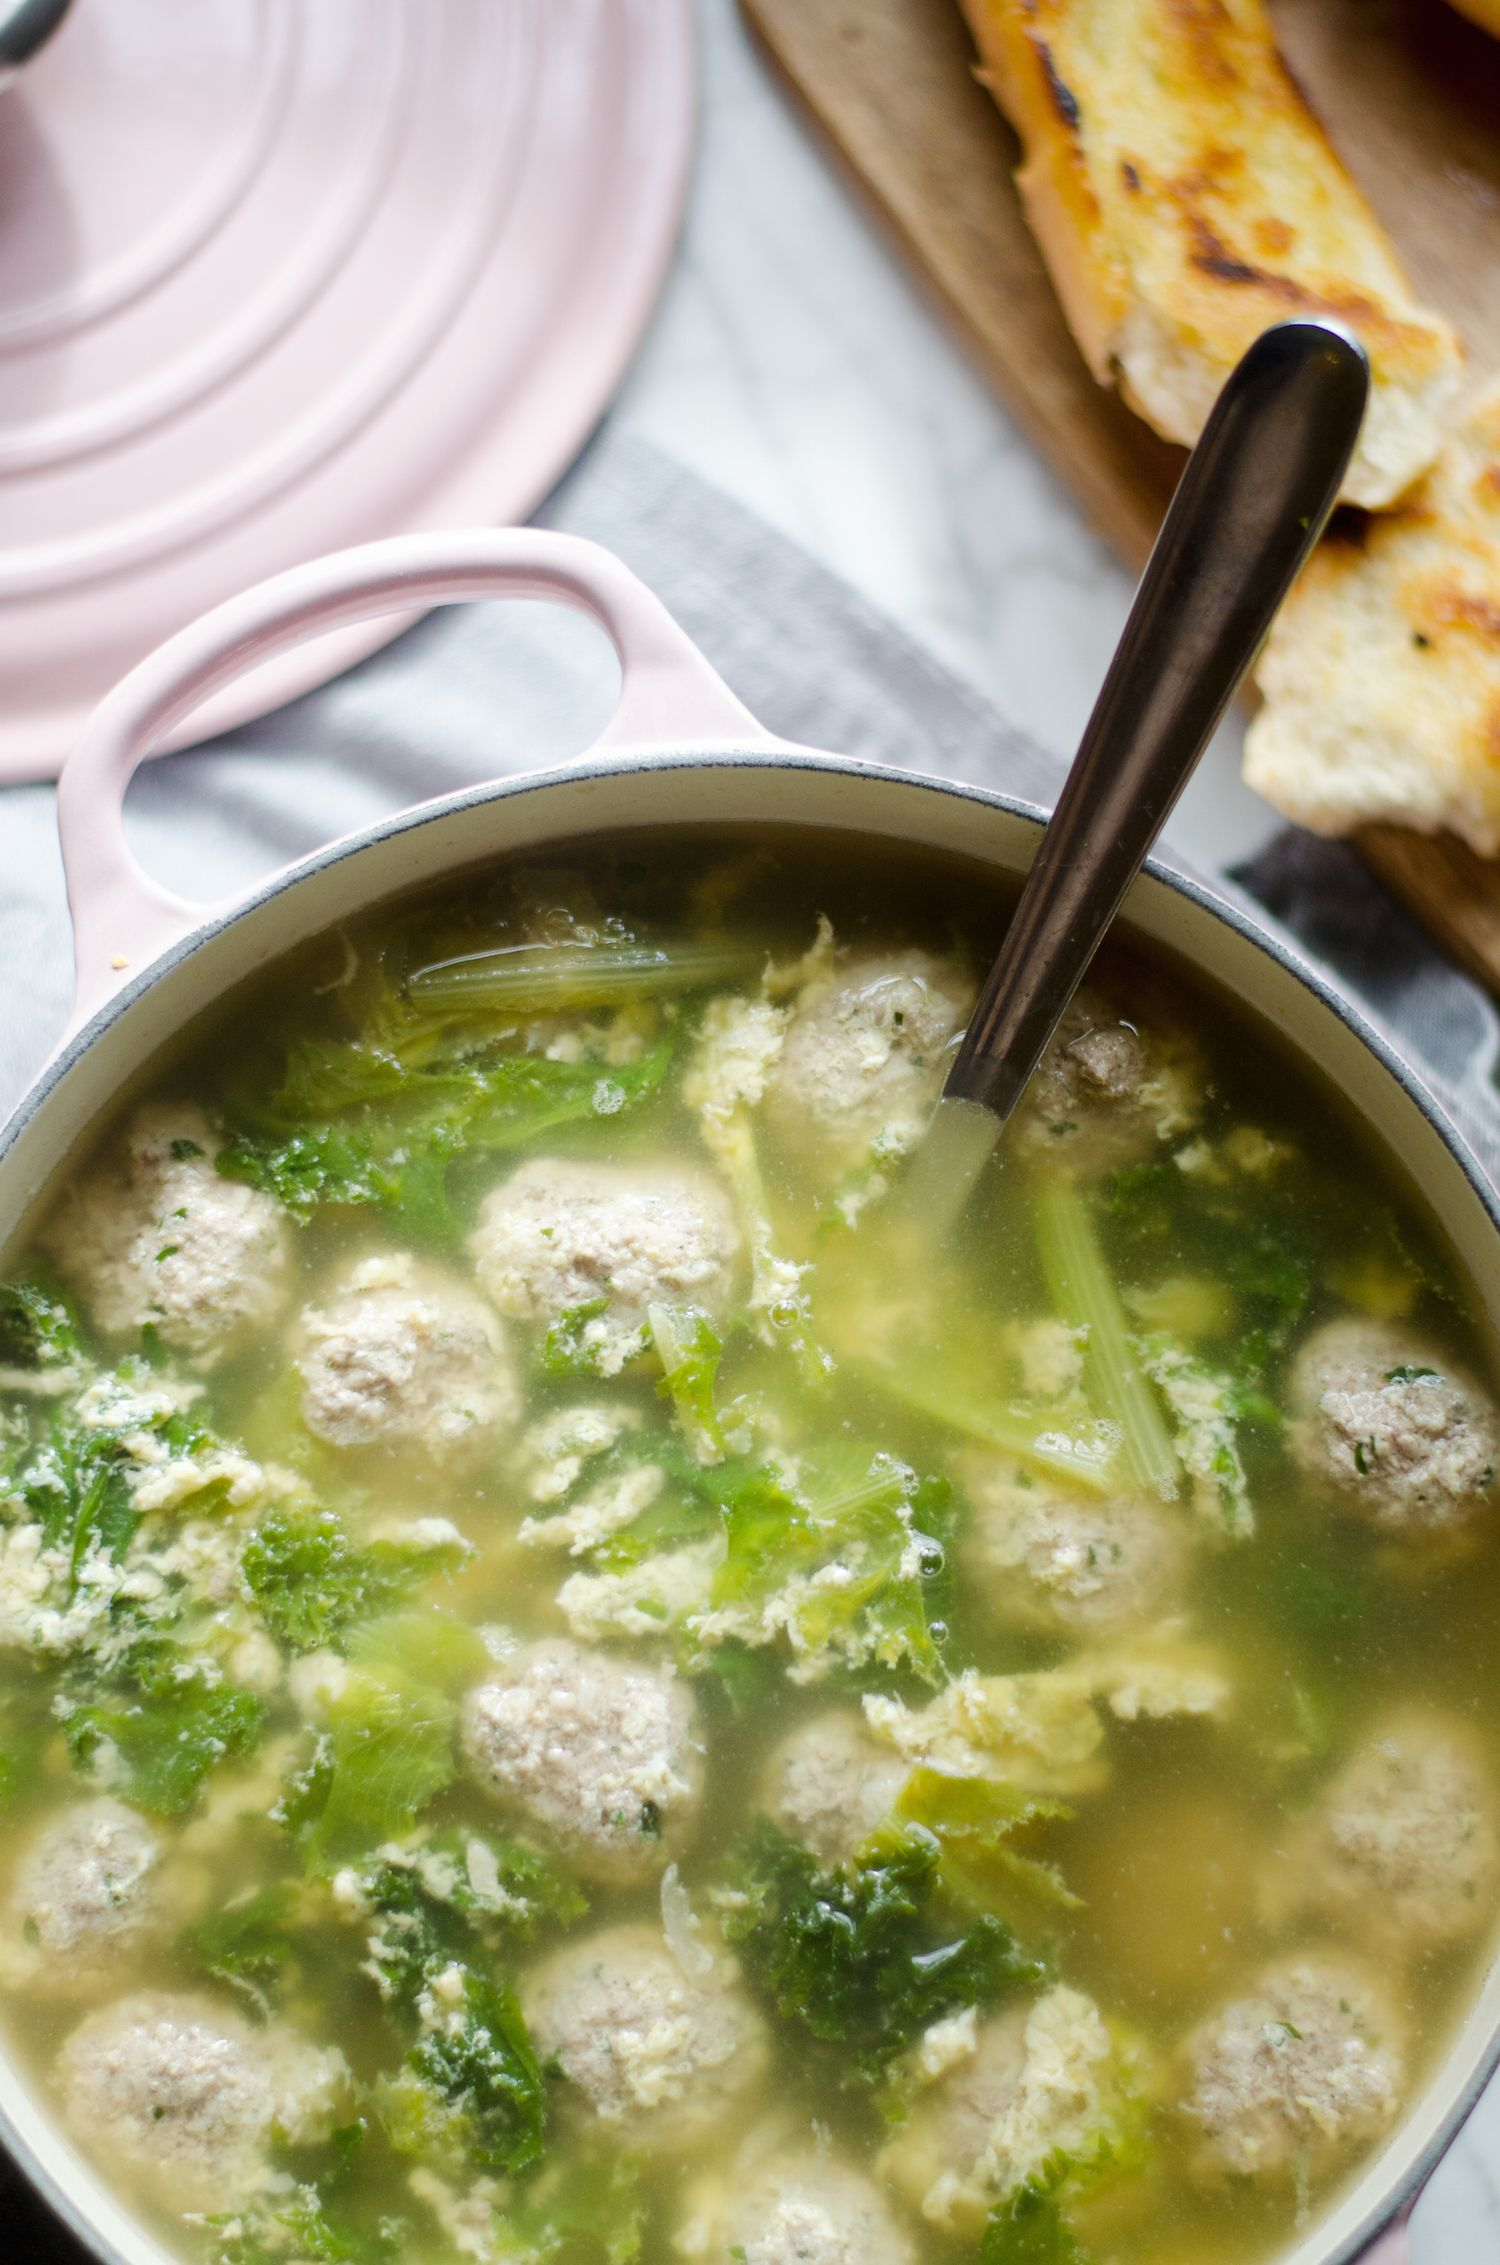 Italian Wedding Soup Giadzy Recipe Italian Recipes Wedding Soup Italian Wedding Soup Recipe